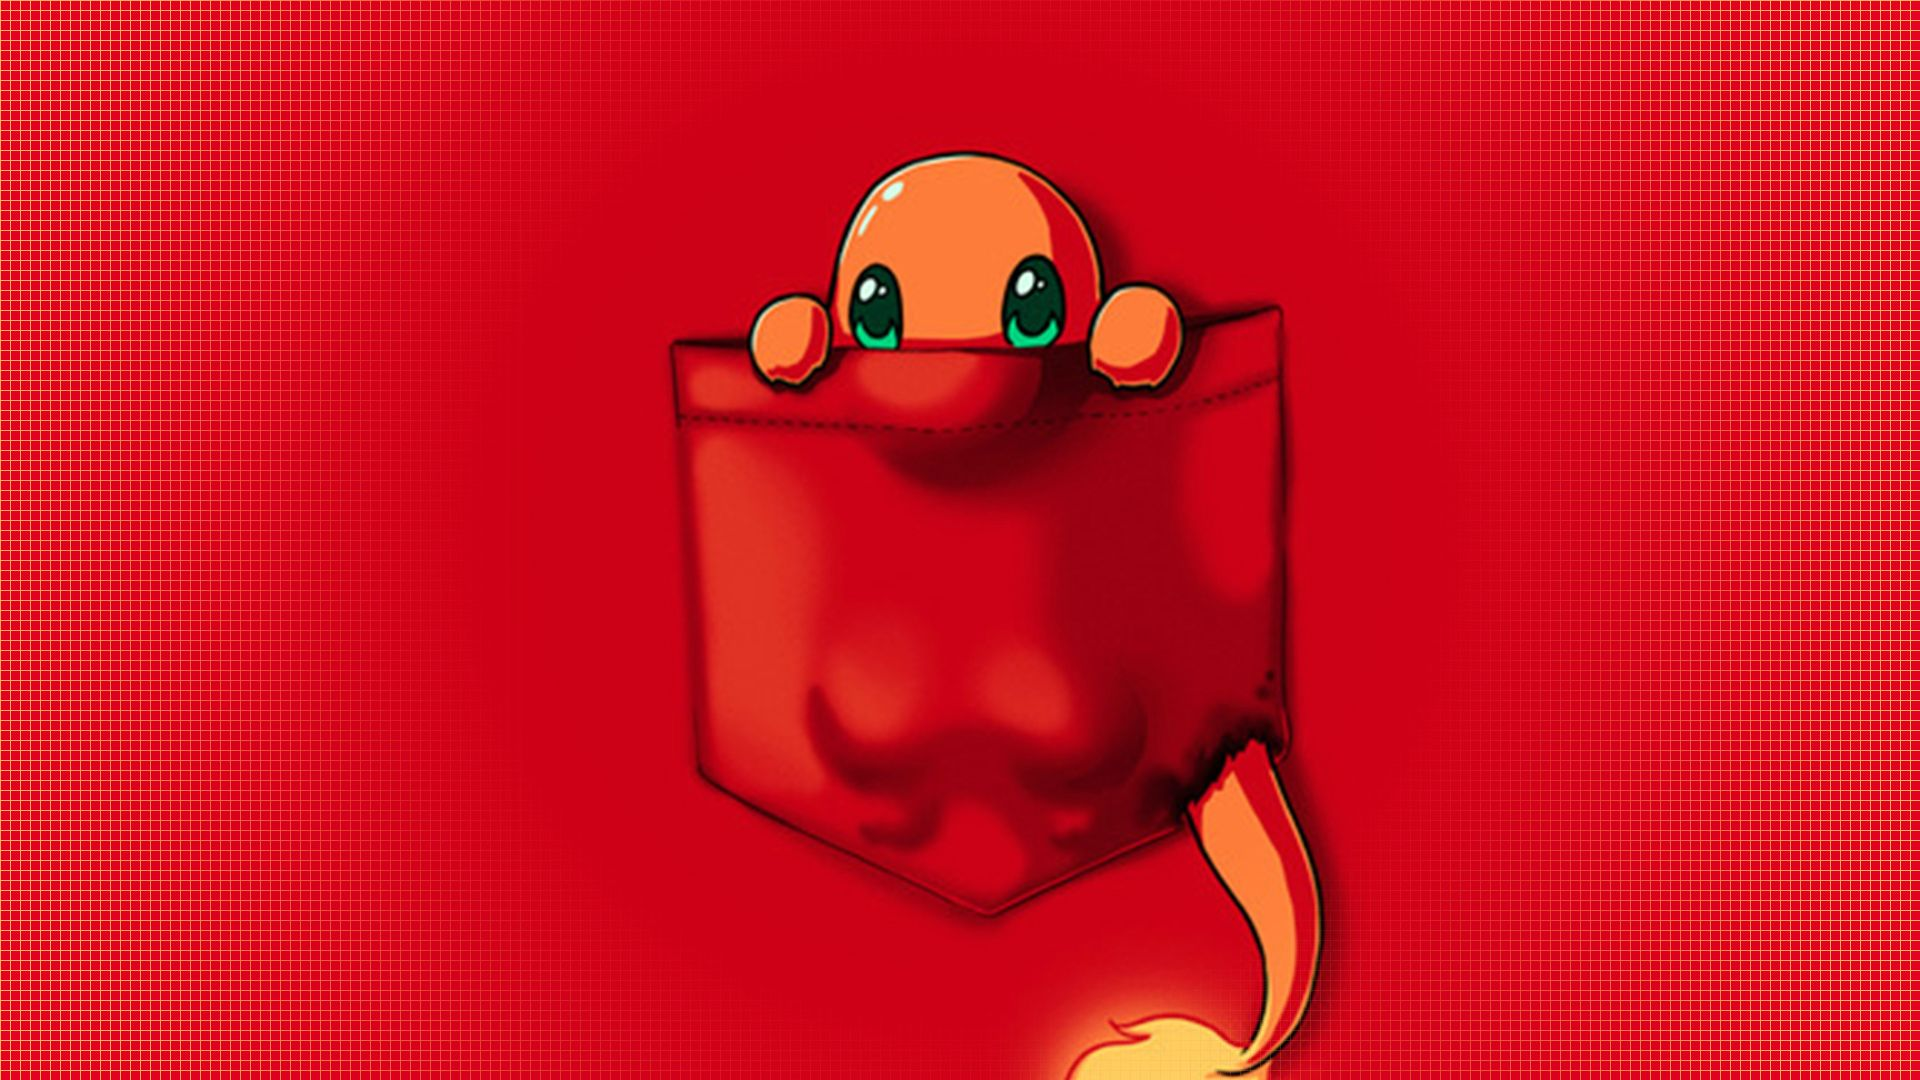 Awesome pokemon wallpapers are awesome!